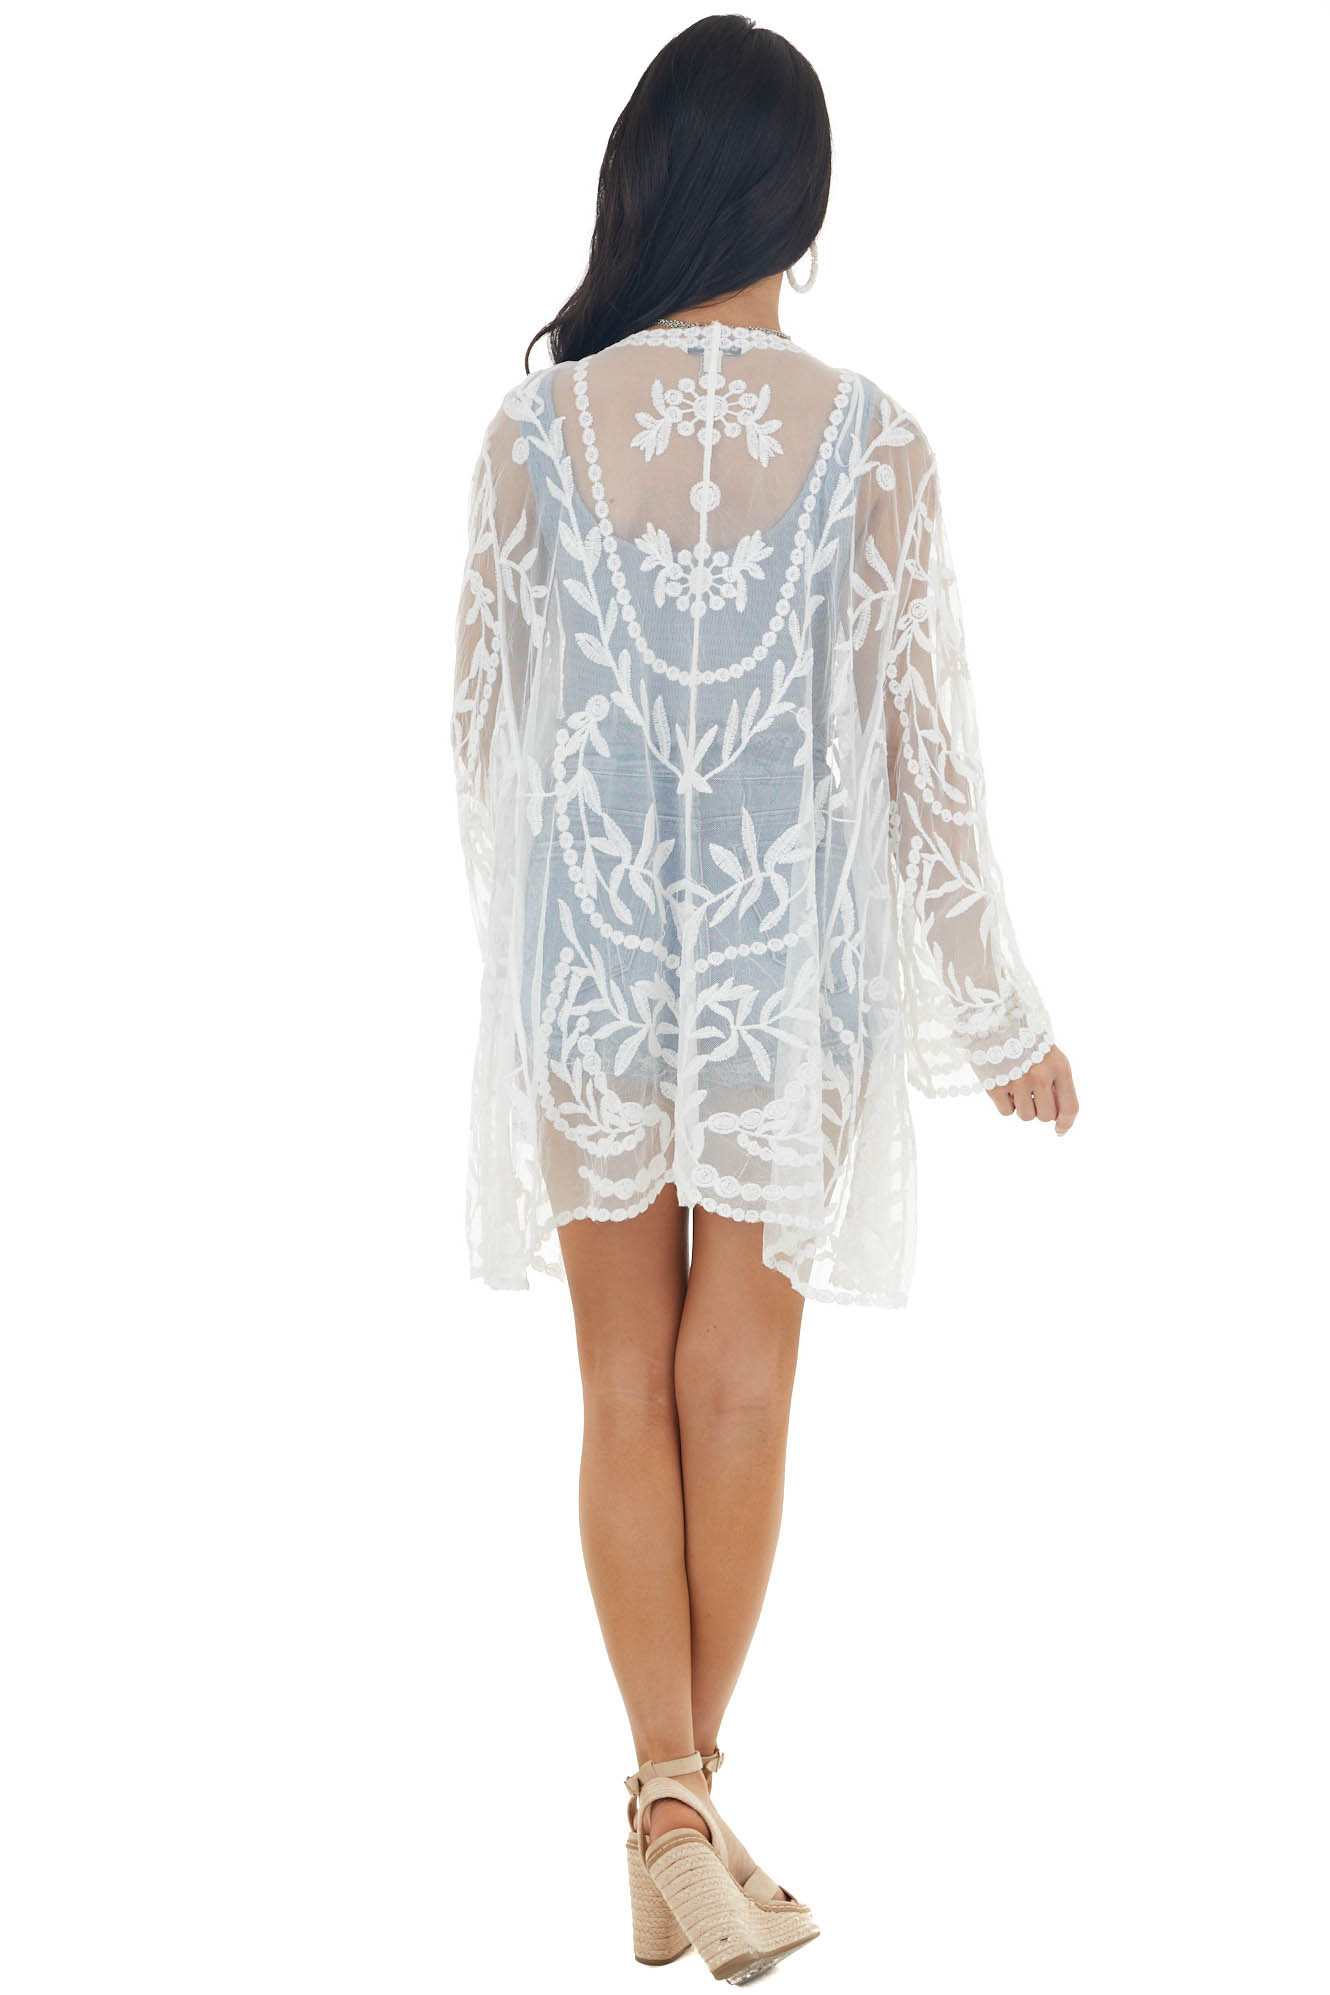 Off White Long Sleeve Open Front Floral Crochet Lace Kimono